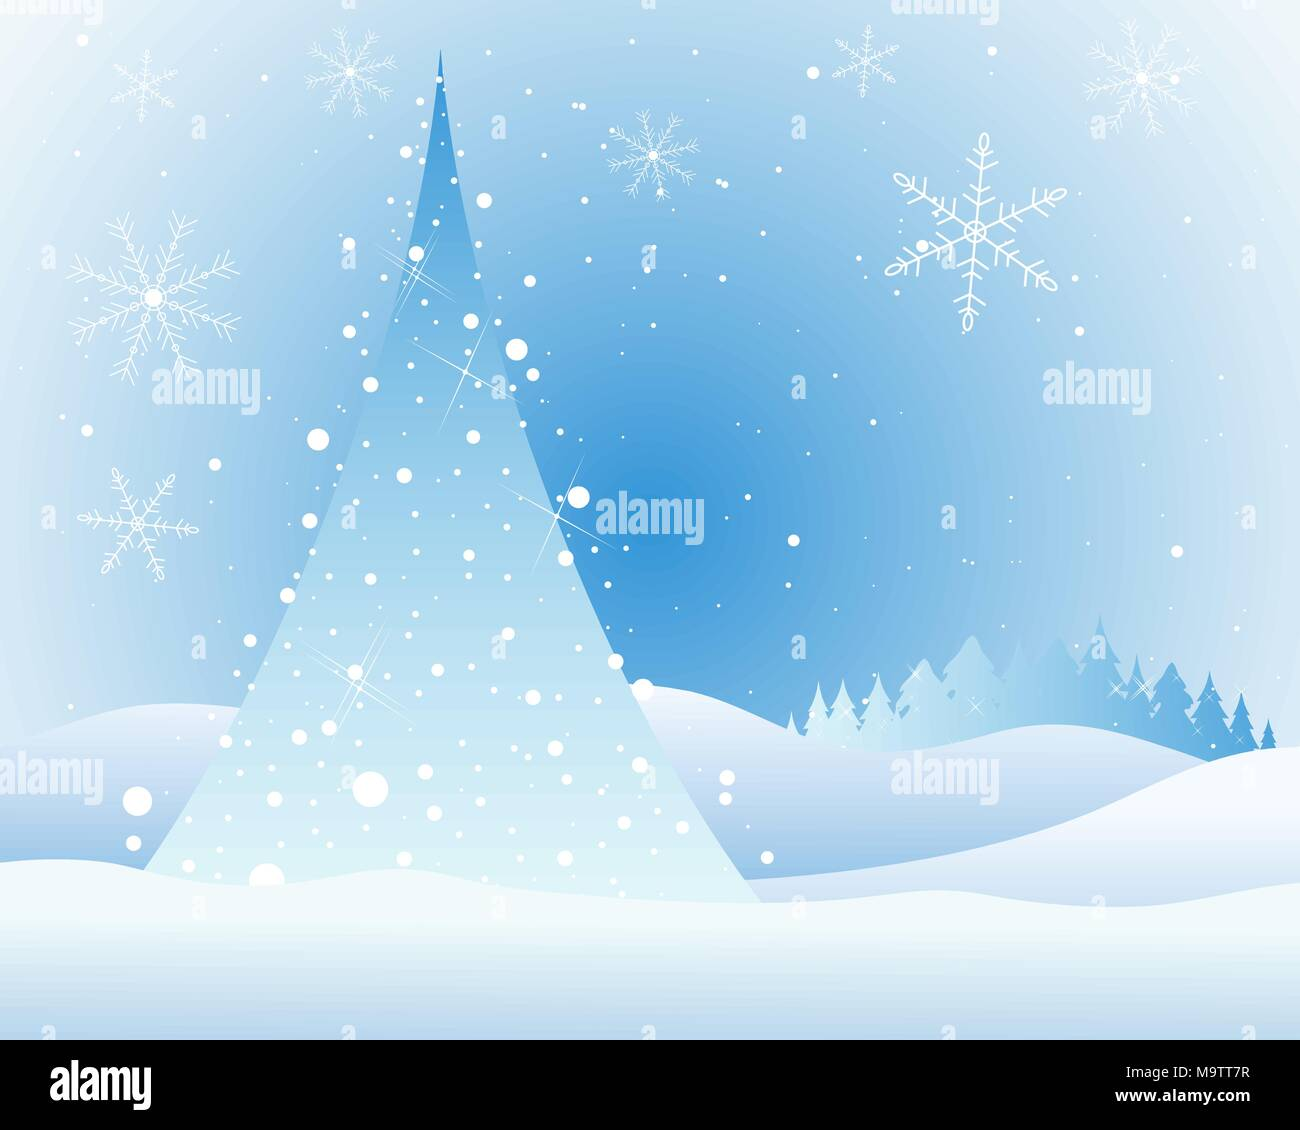 8fa6dc02e2a8ff an illustration of an abstract christmas tree with white lights and  sparkles in a snowy landscape